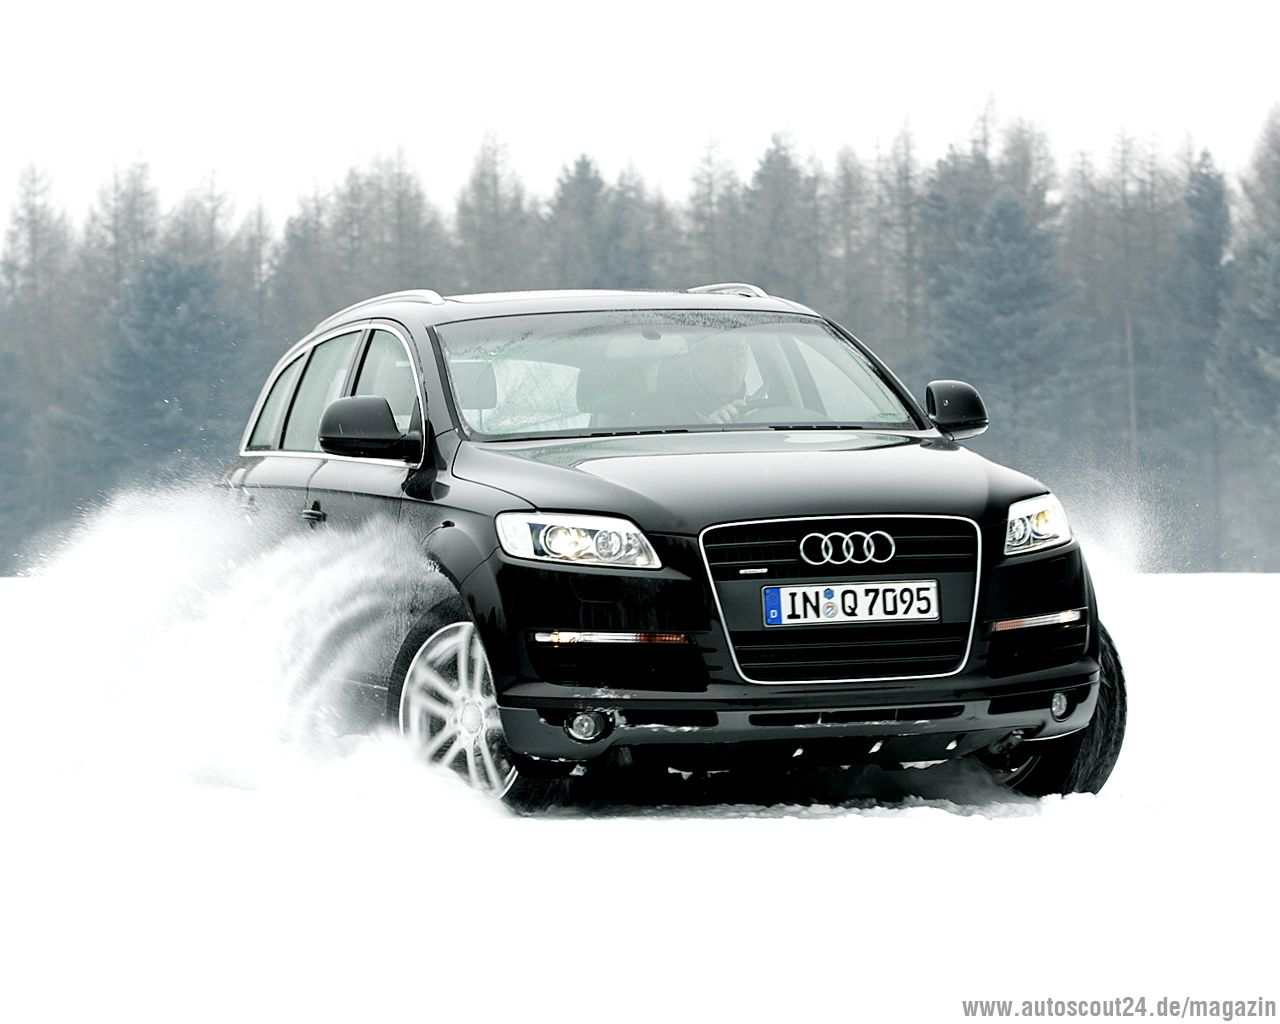 q7 Cant wait to pick it up